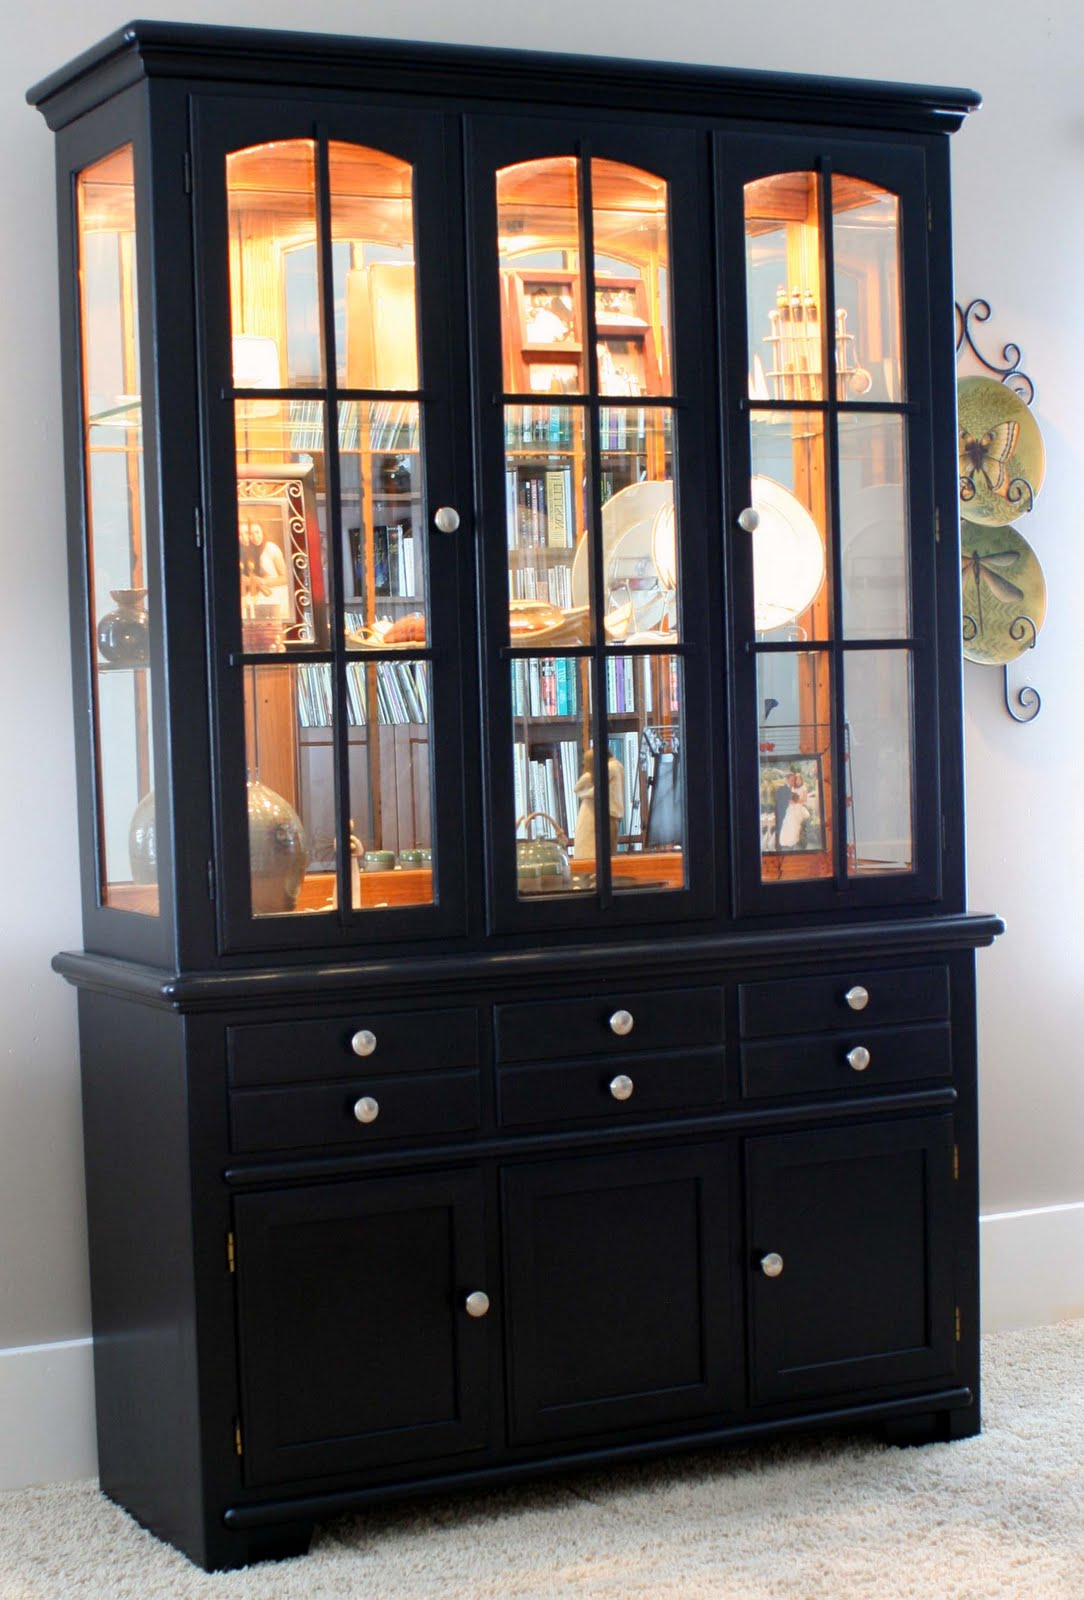 Dining Room Hutch Decorating Ideas | House Made of Paper